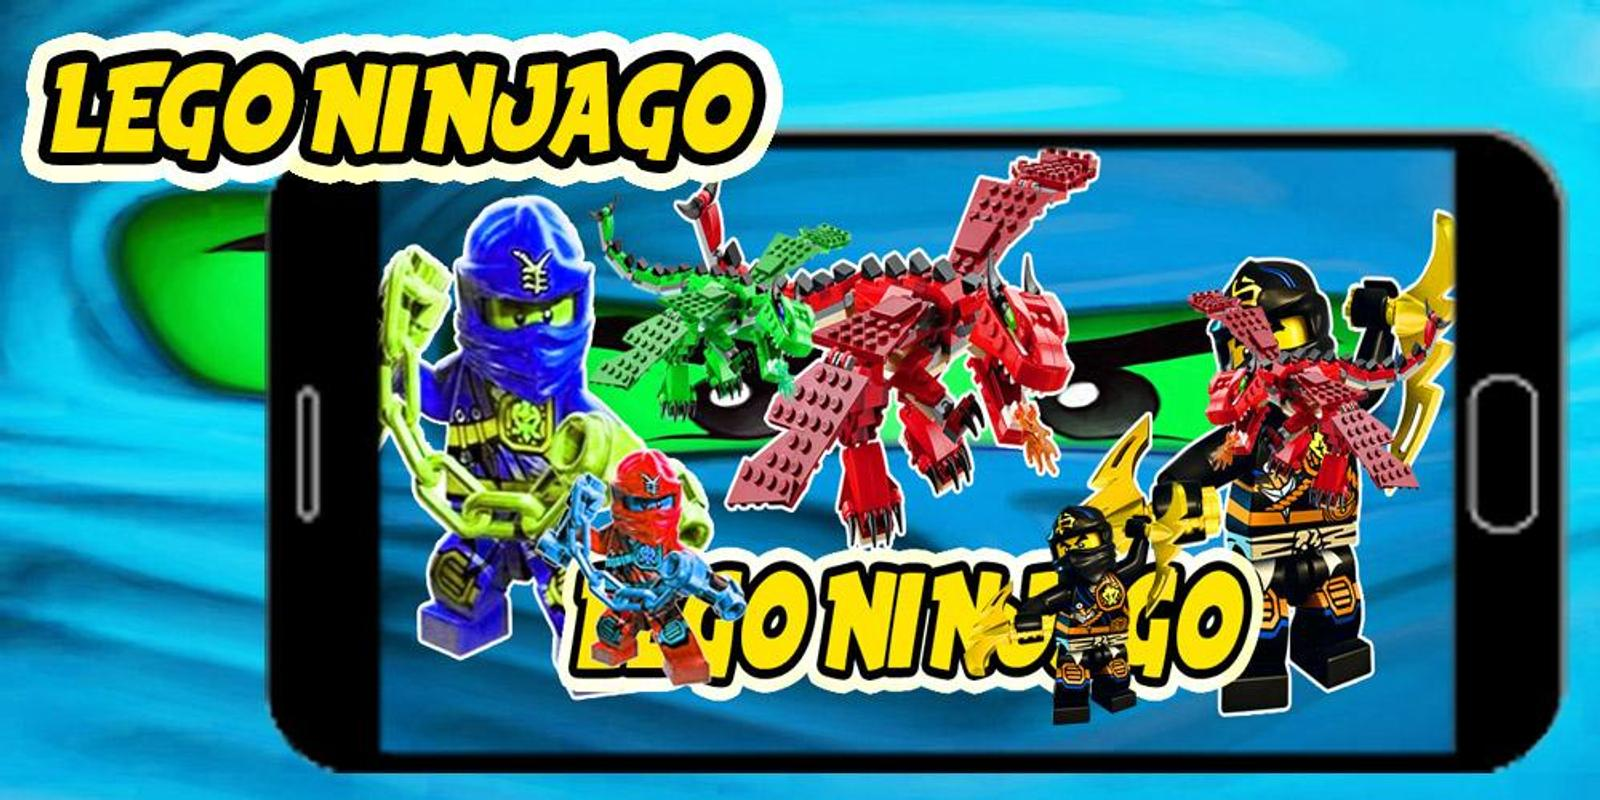 New guide lego ninjago for android apk download.